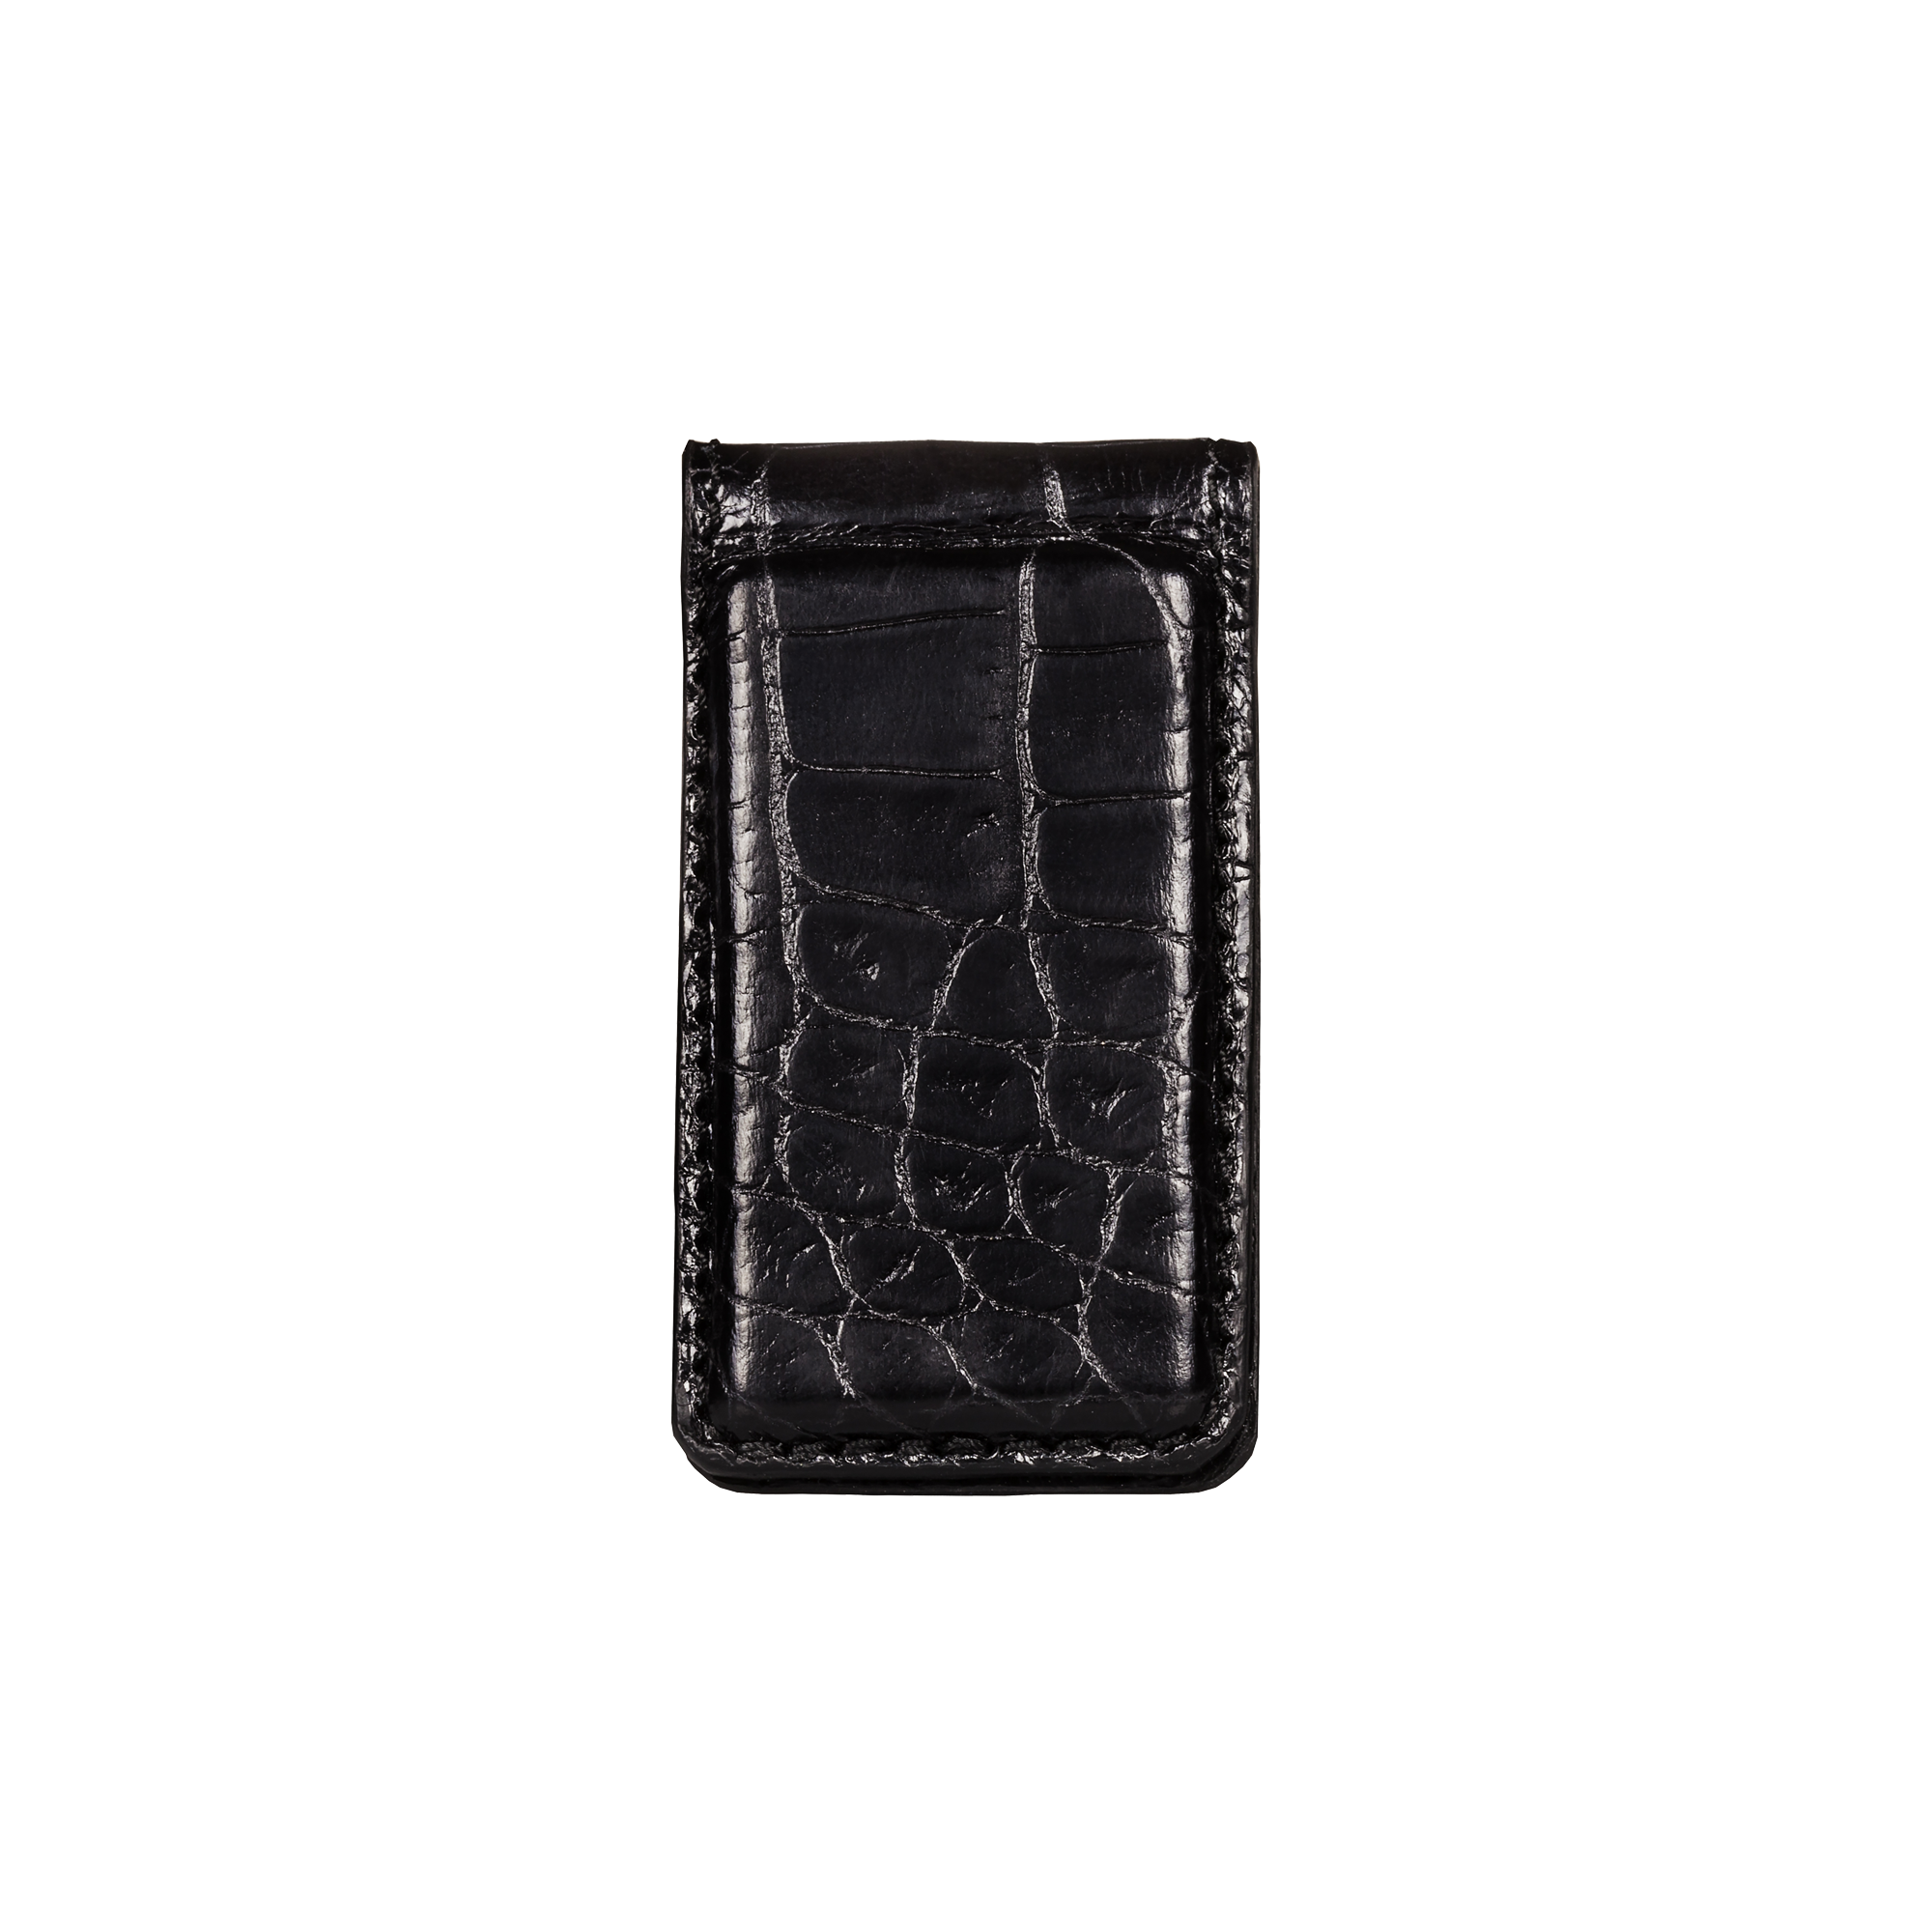 Money Clip, Croco Leather Black/Black, MAISON JMK-VONMEL Luxe Gifts